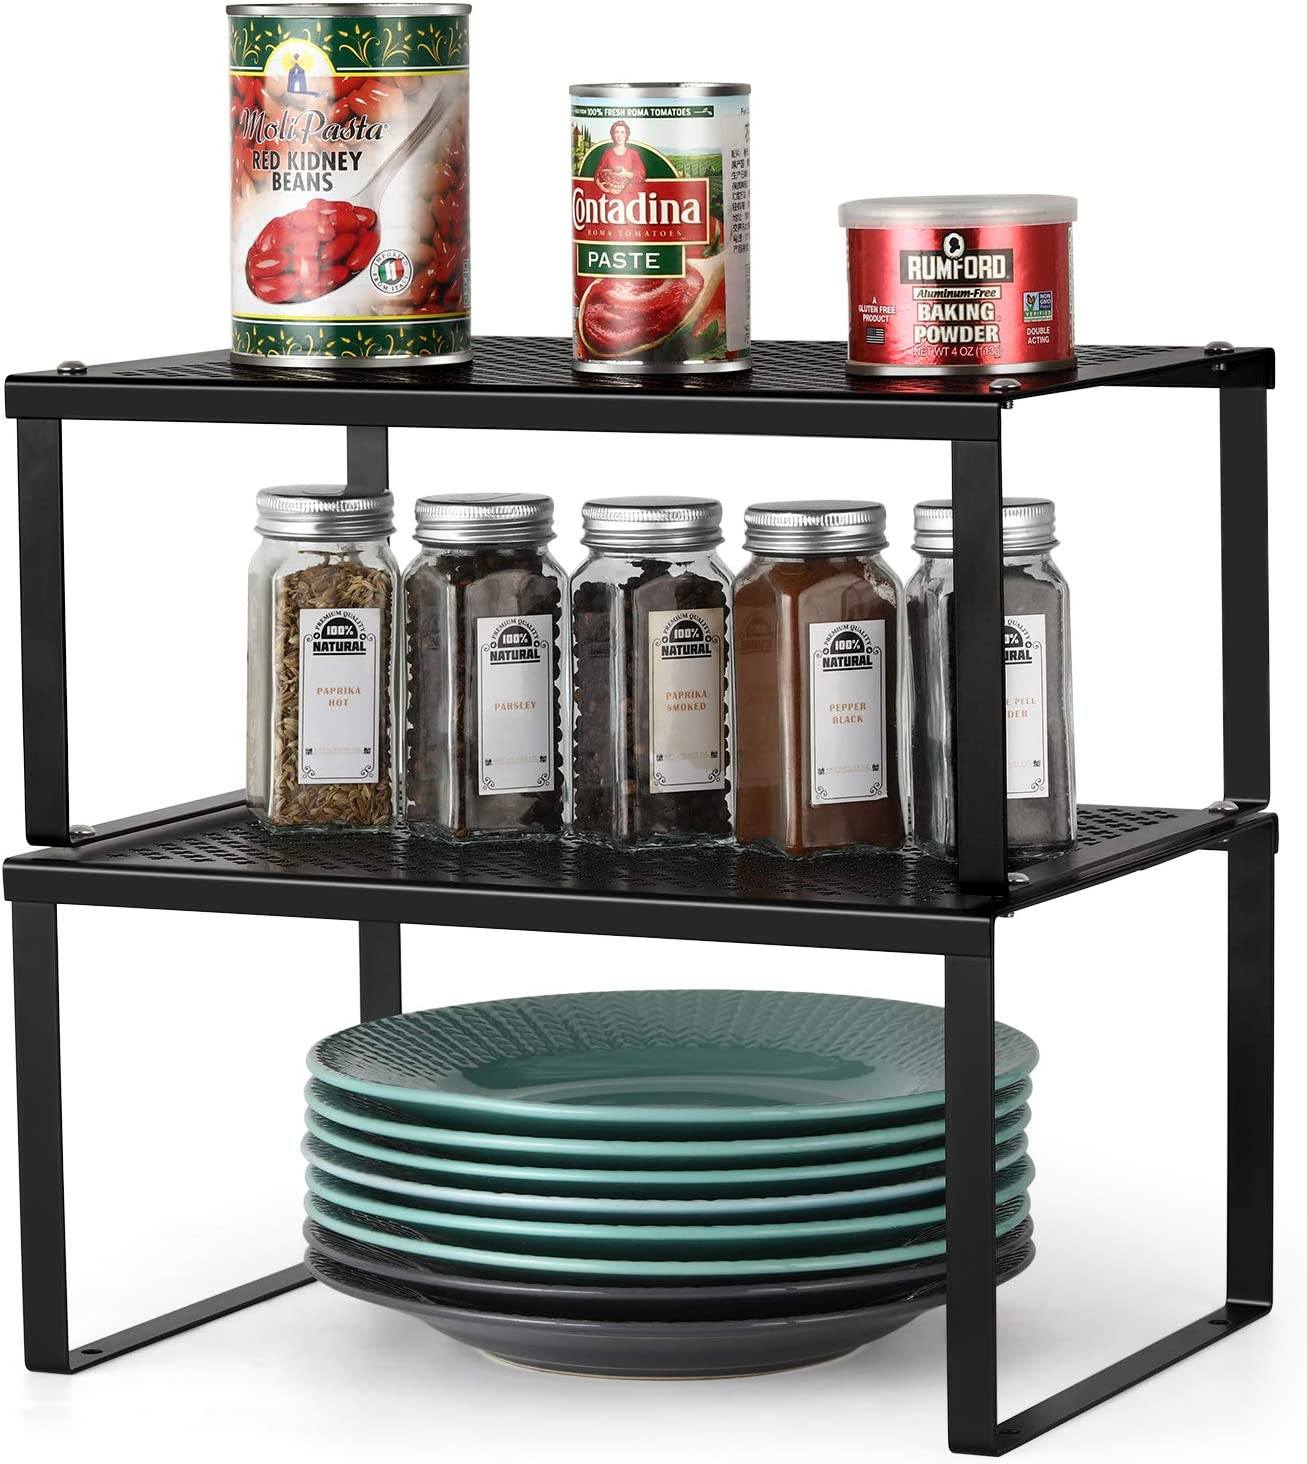 BTY Kitchen Rack Counter Dealing full price reduction Storage Organizer Pack All stores are sold Cabinet Shelf 2